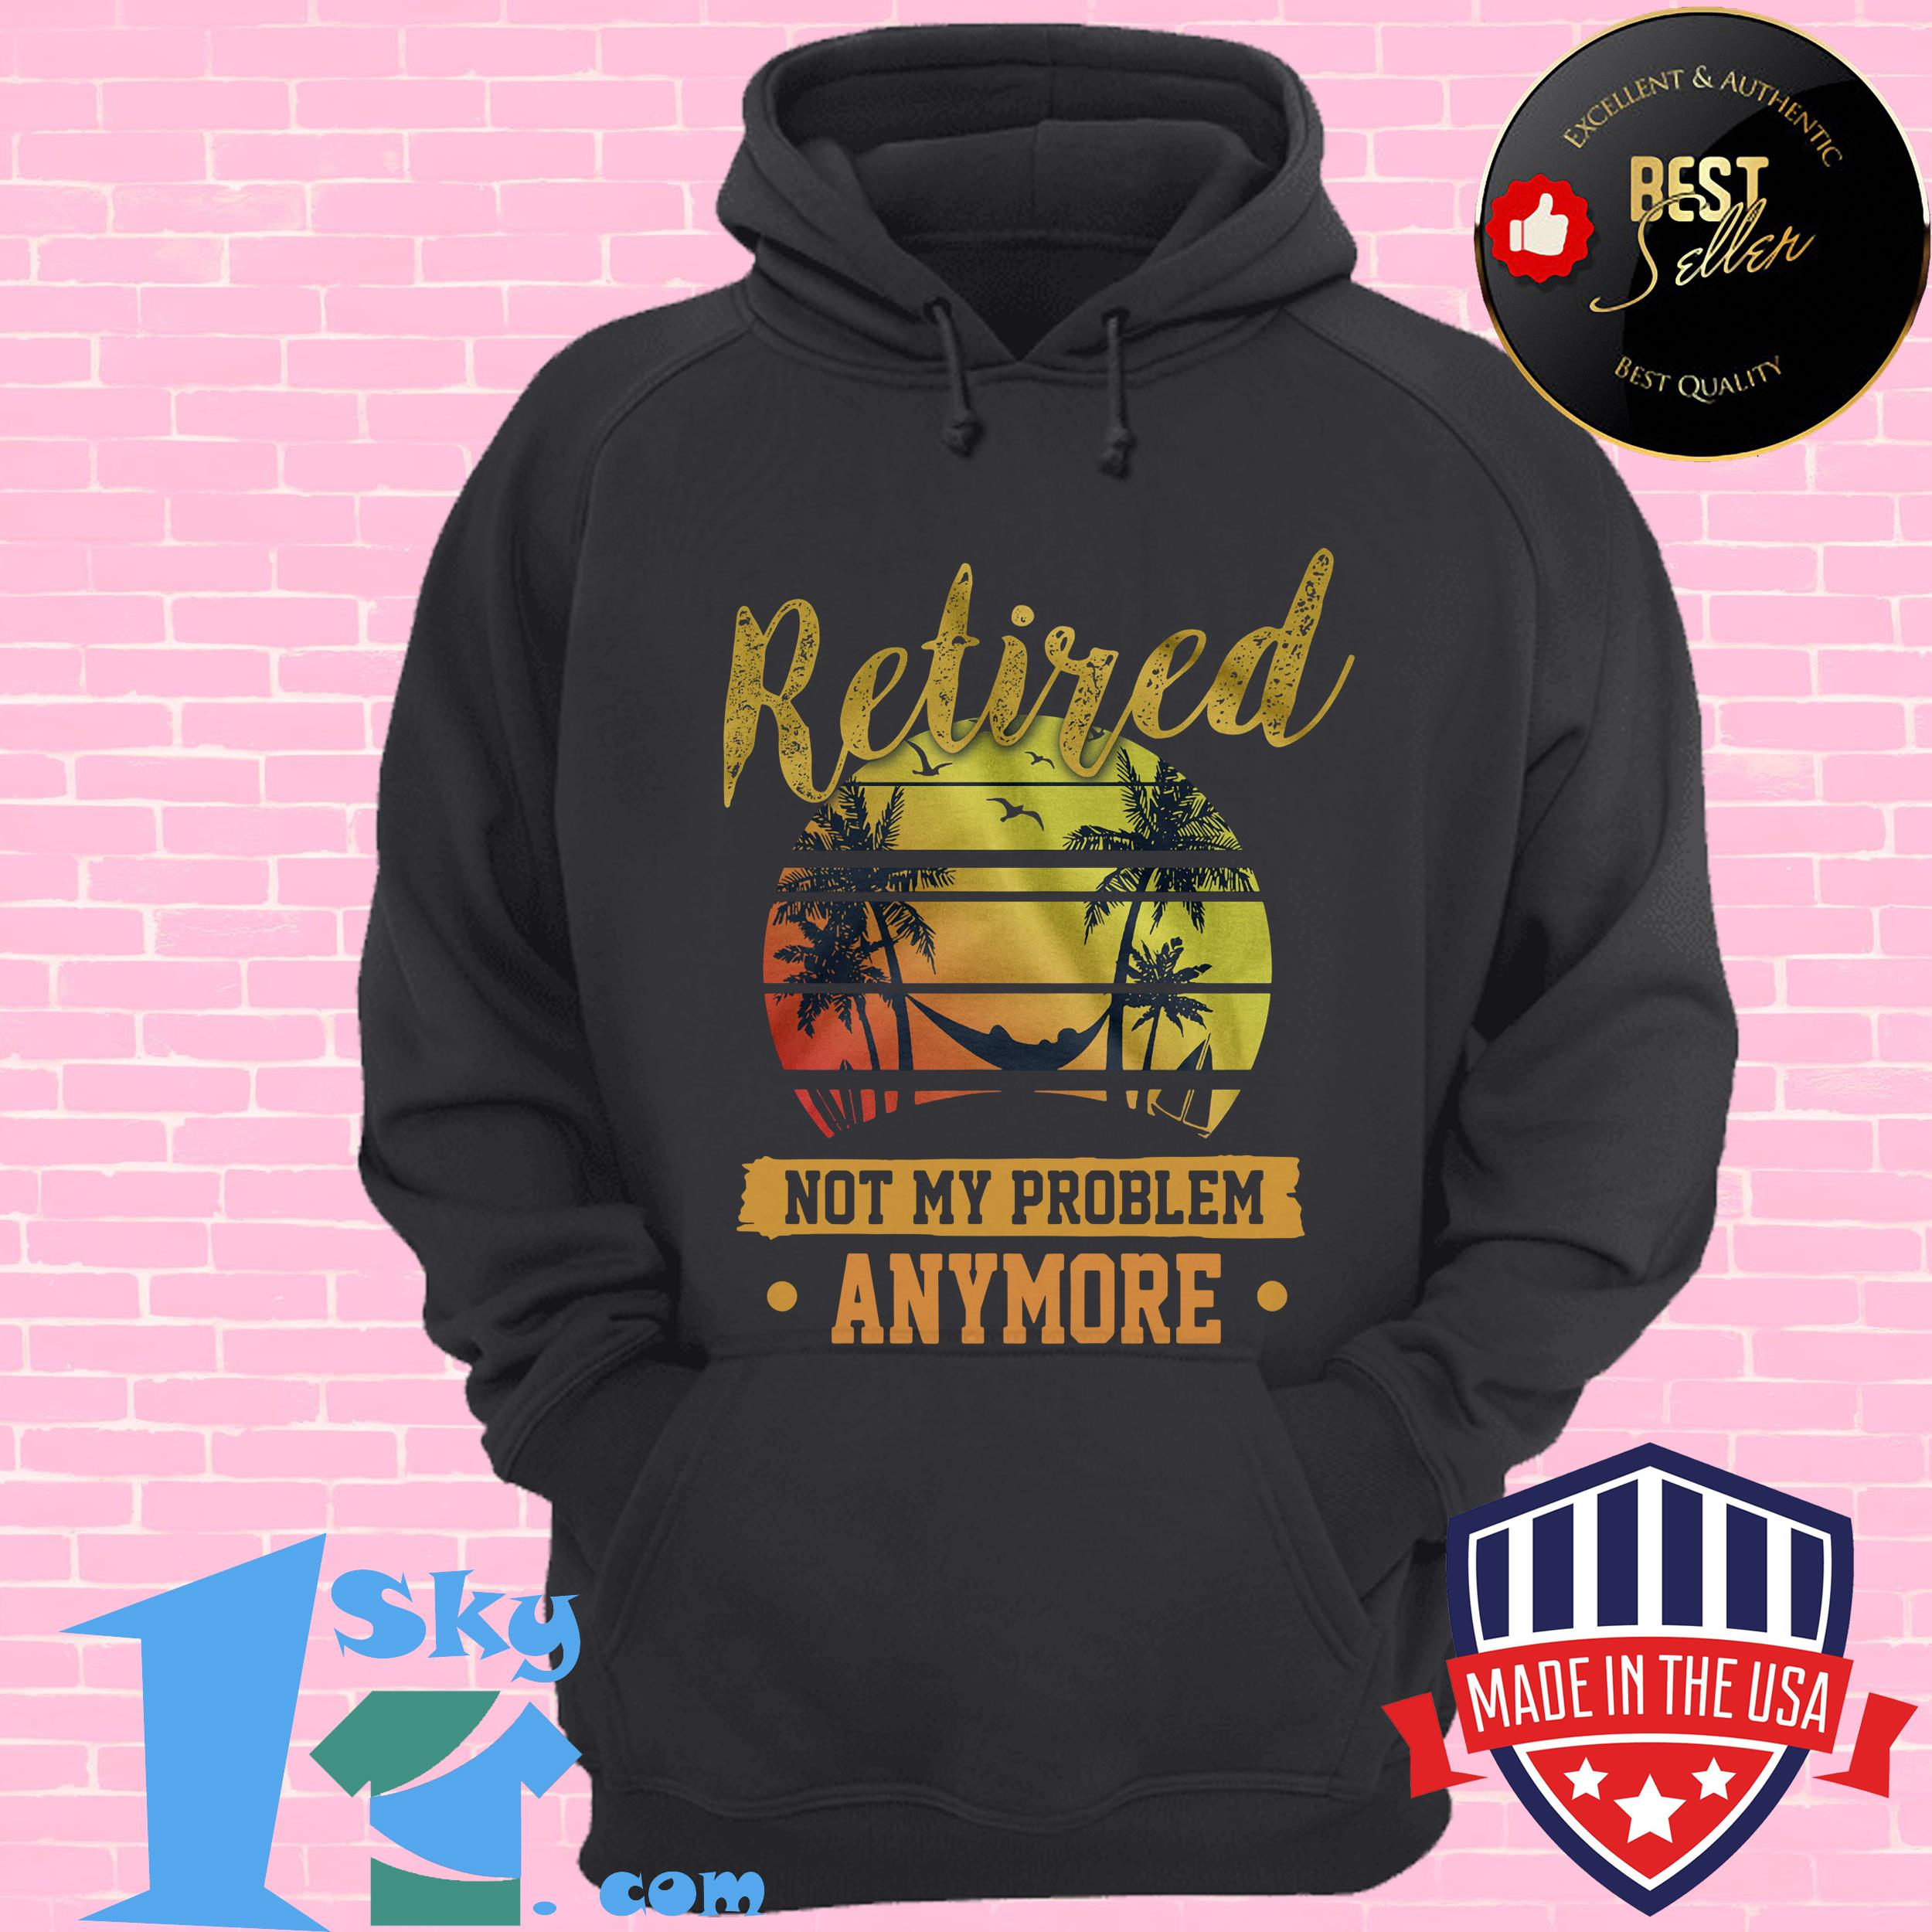 retired not my problem anymore vintage hoodie - Retired Not My Problem Anymore Vintage shirt